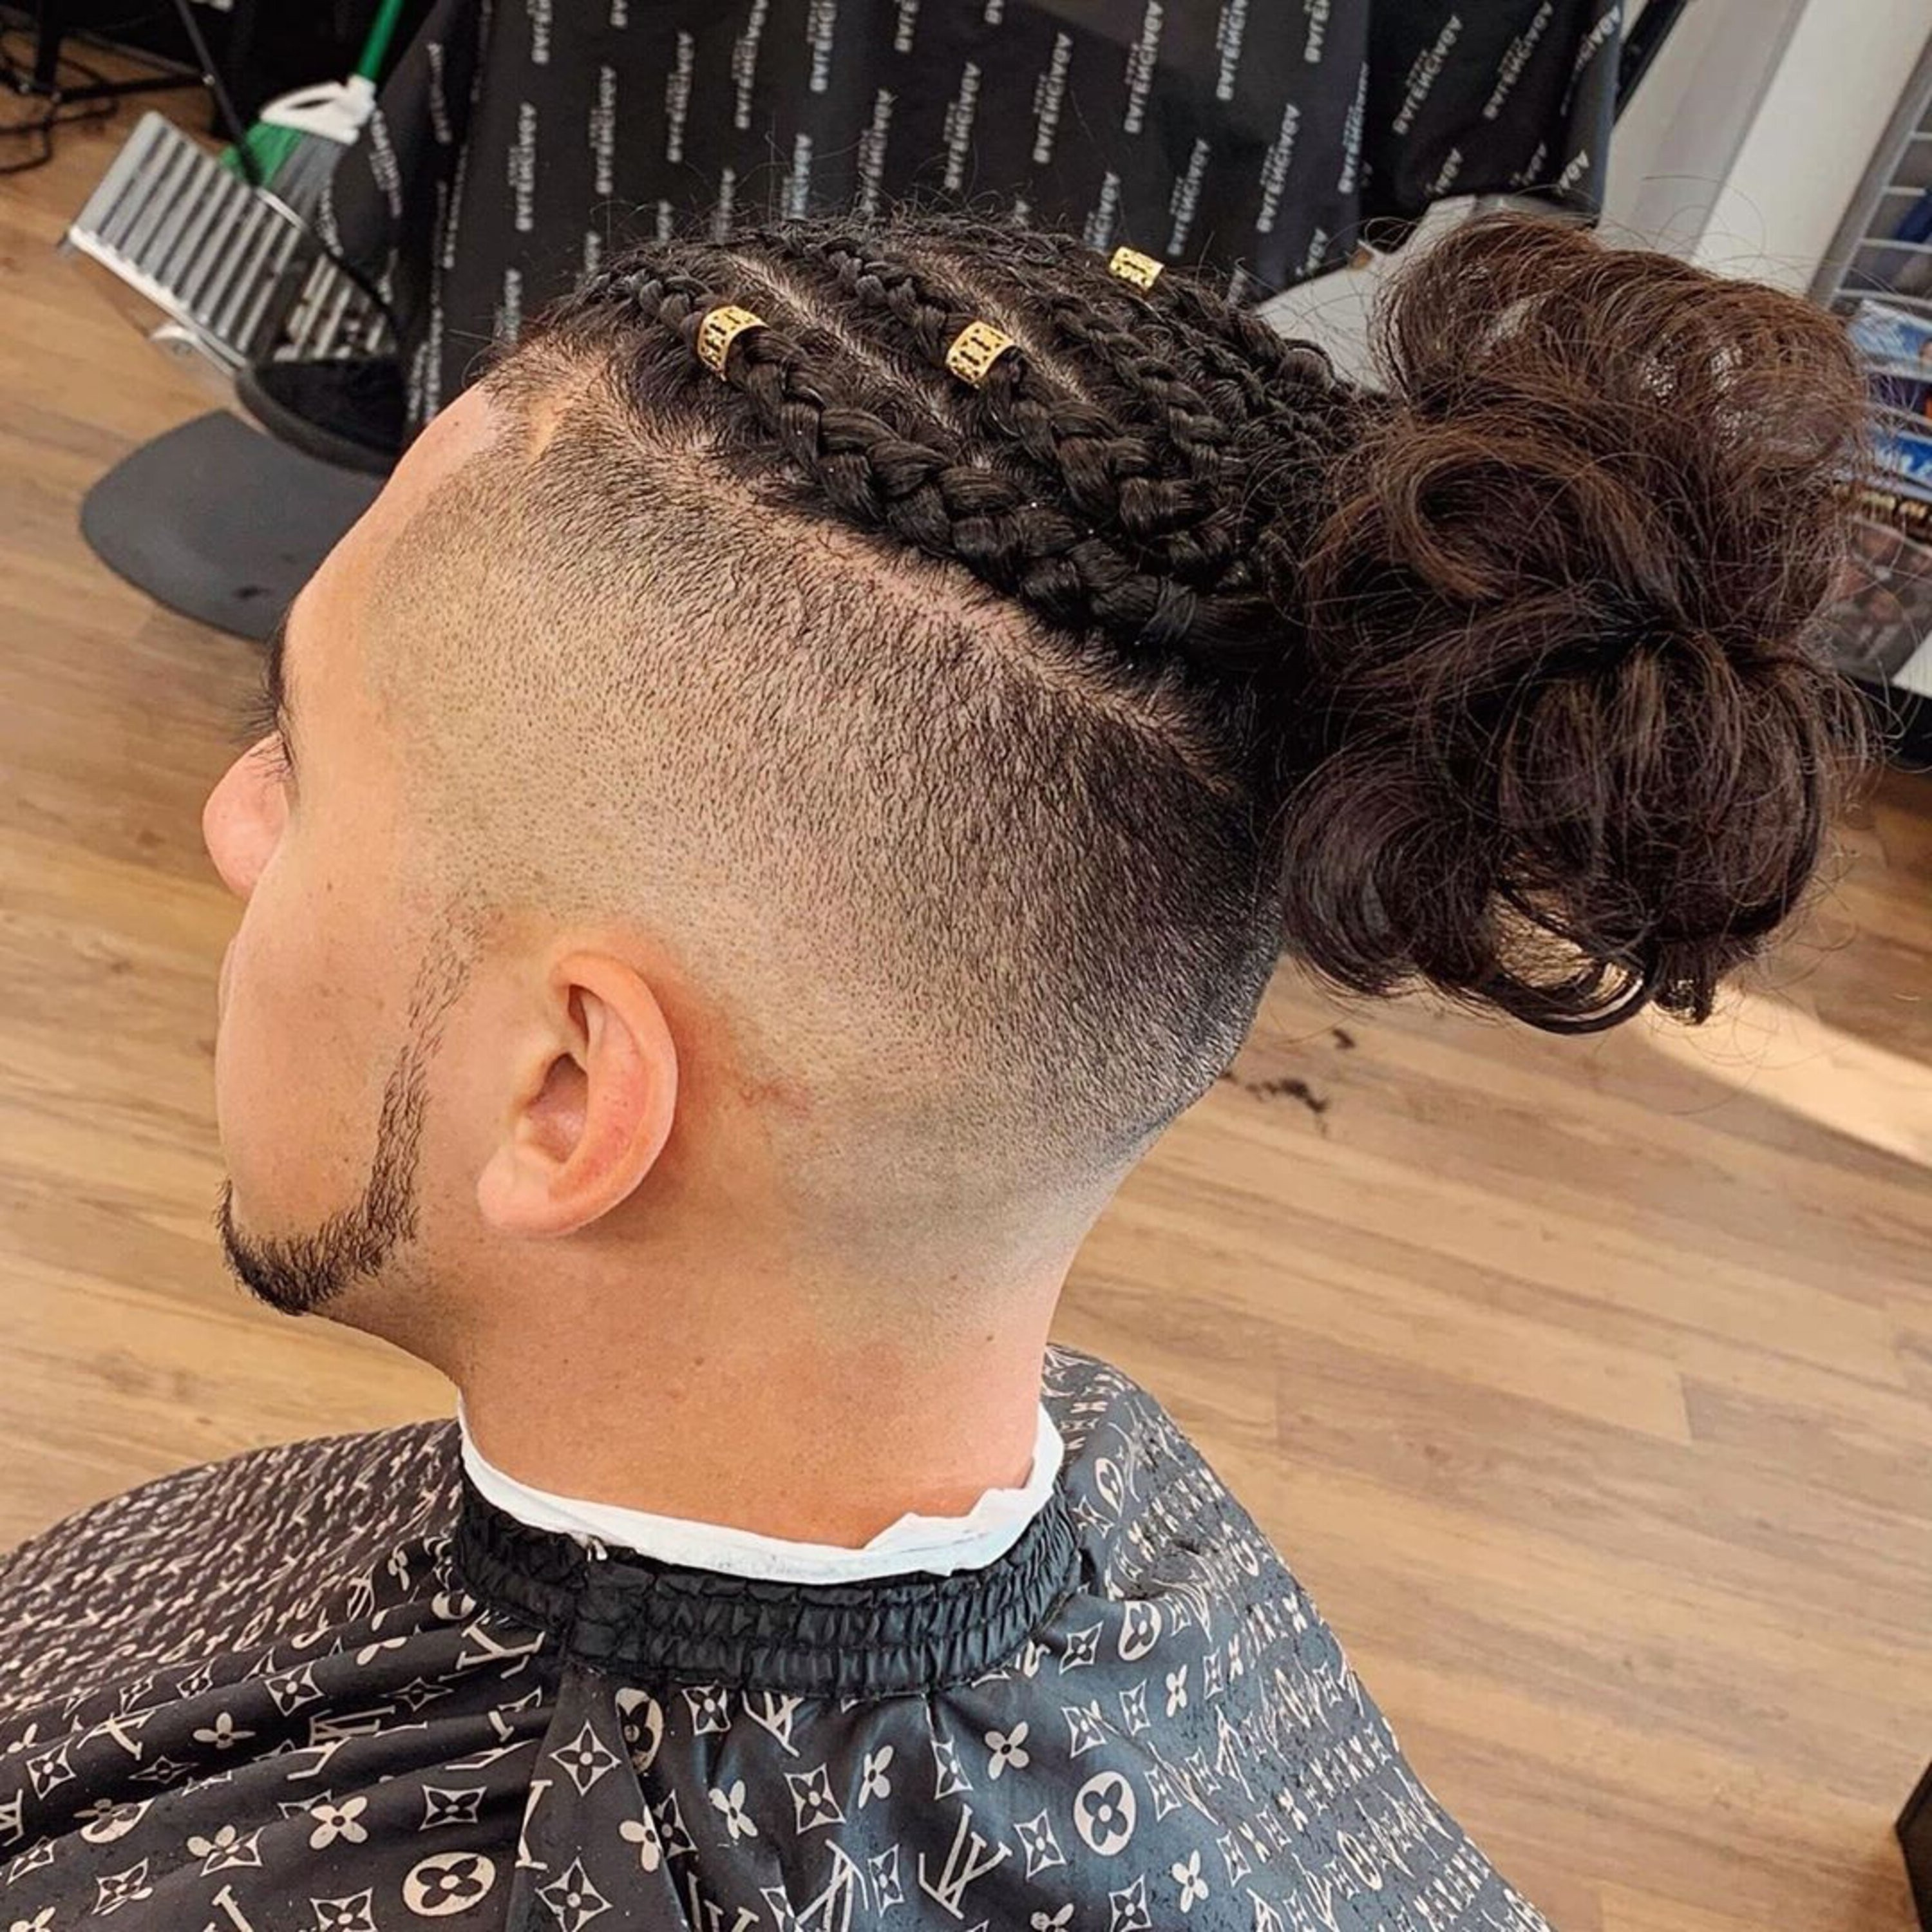 A Puerto Rican male bun hairstyle.